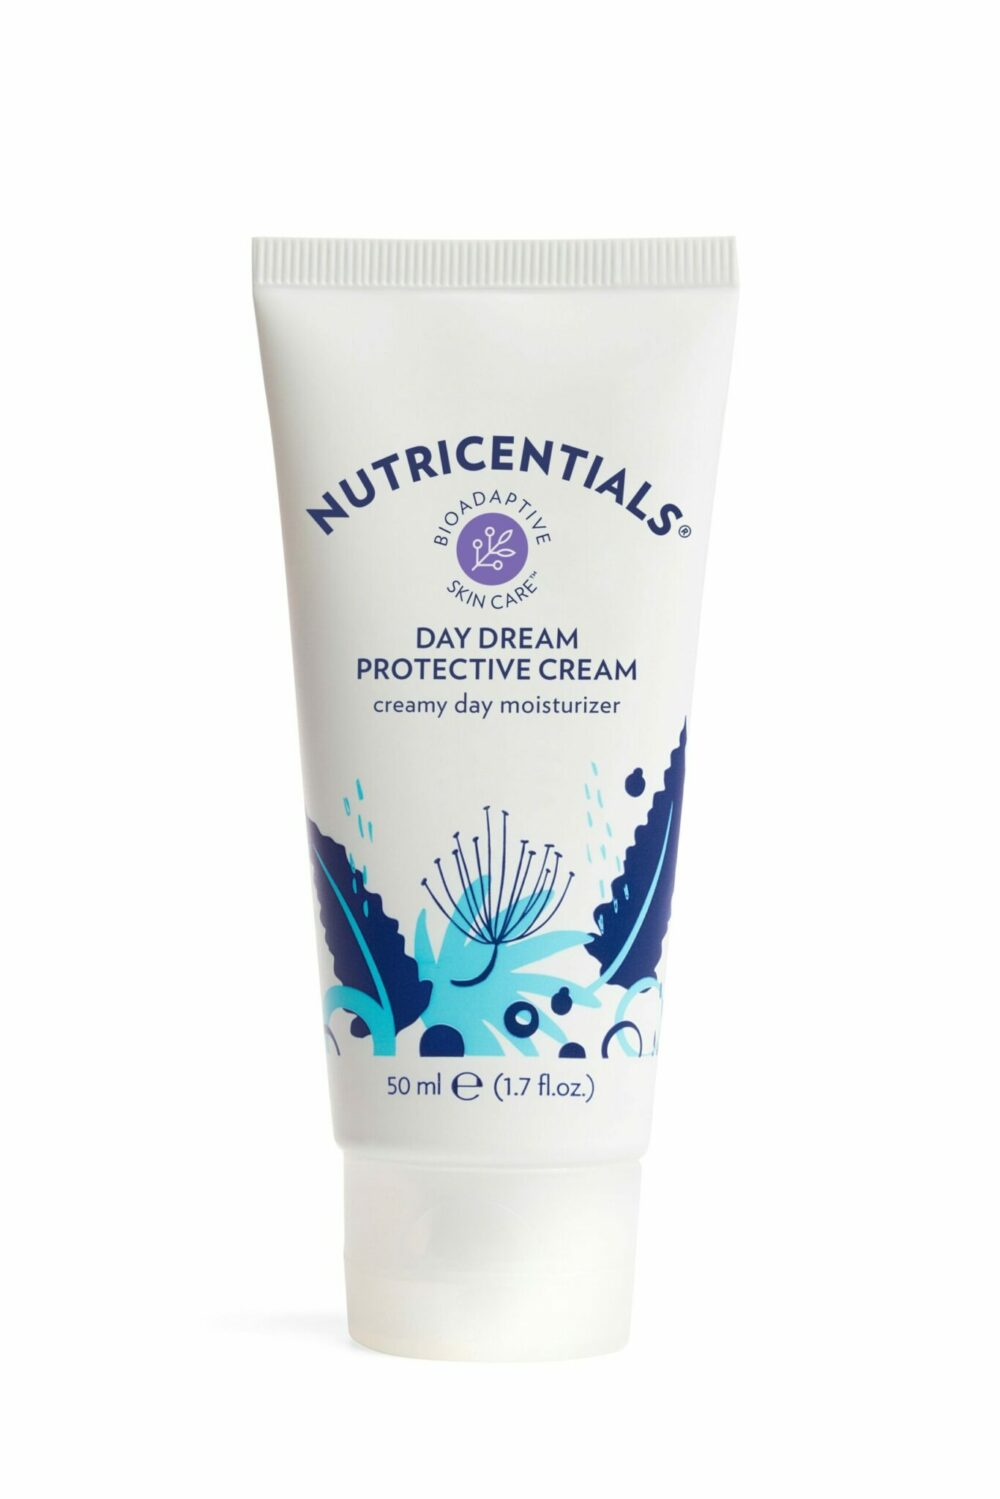 Day Dream Protective Cream Nutricentials